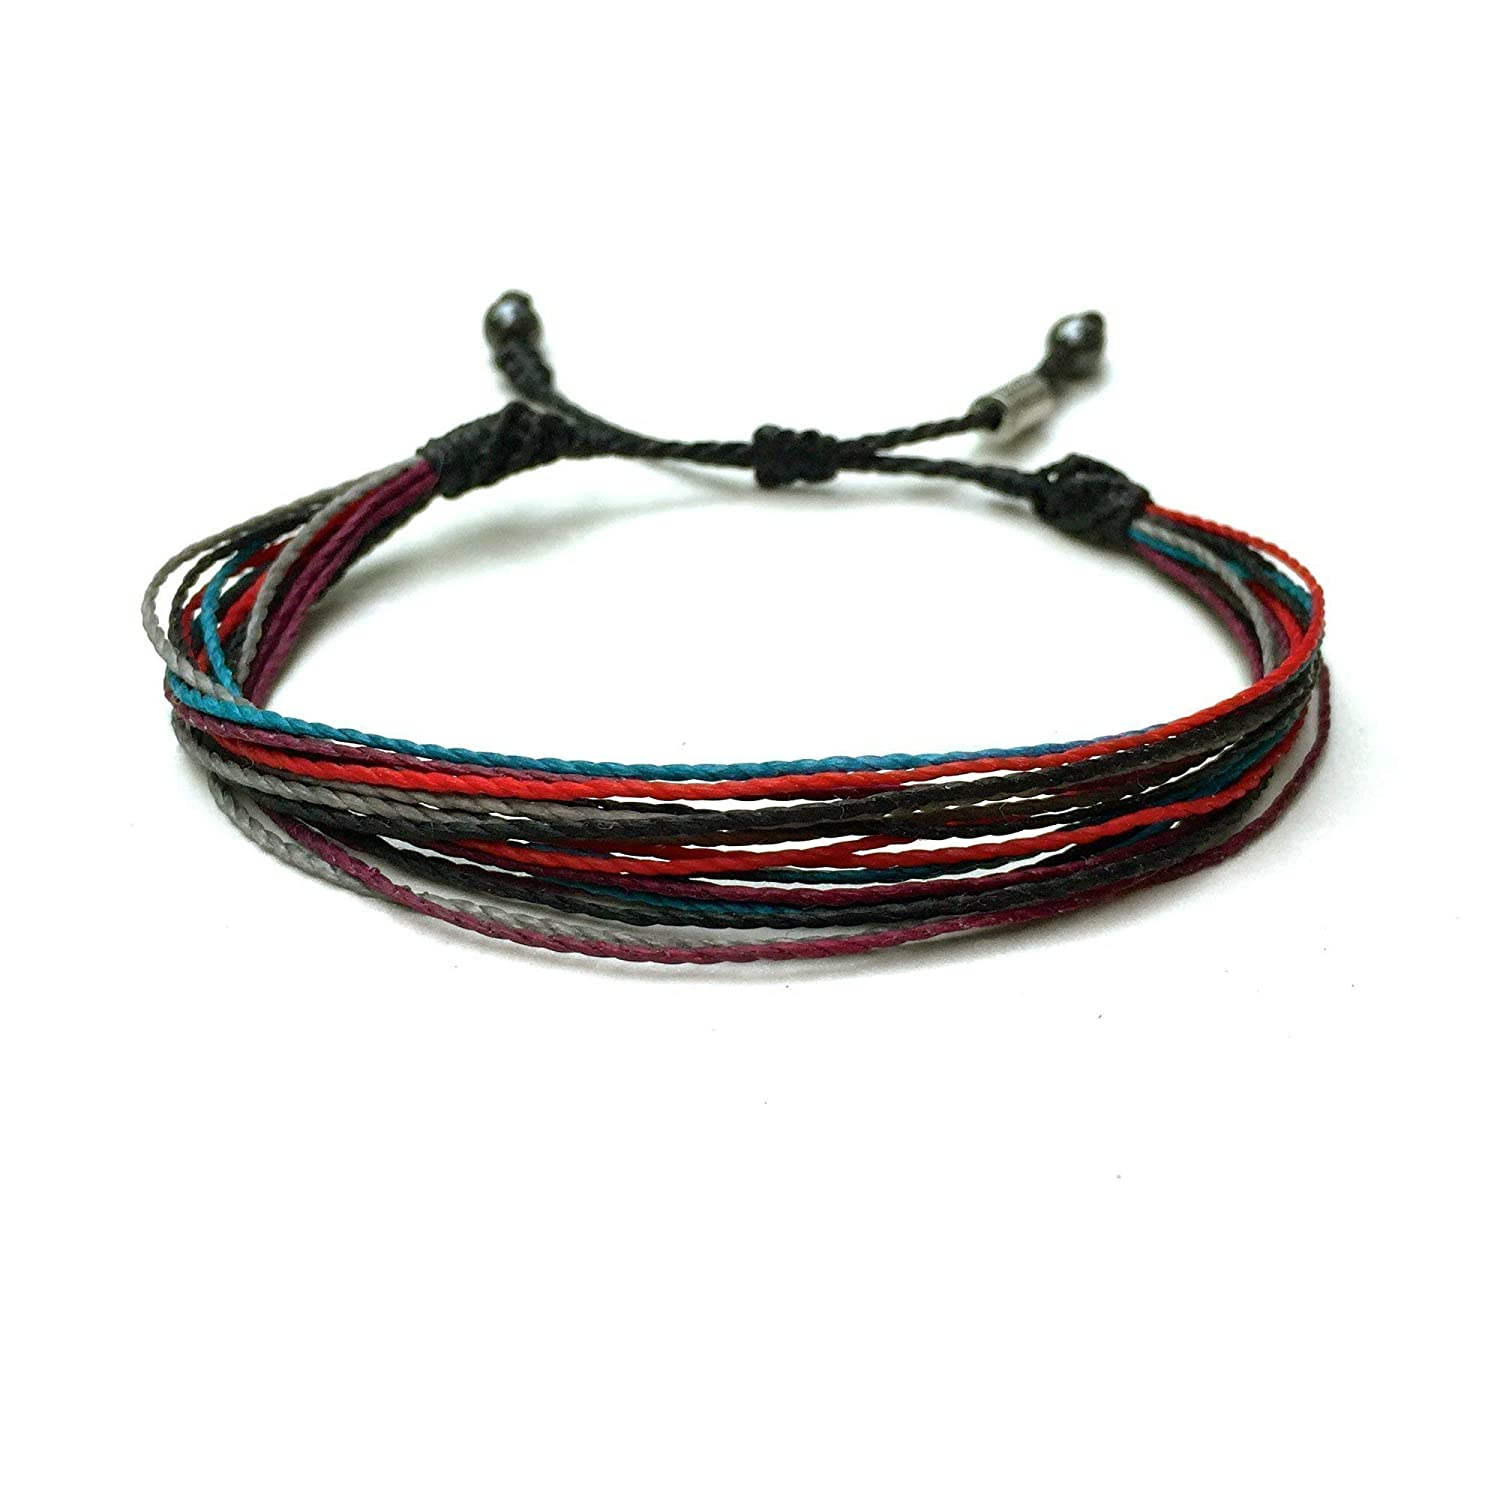 Men's String Bracelet in Black, Red, Turquoise, Plum and Gray with Hematite Stones: Handmade Surf Bracelet for Men with Wrist Sizes 6-7